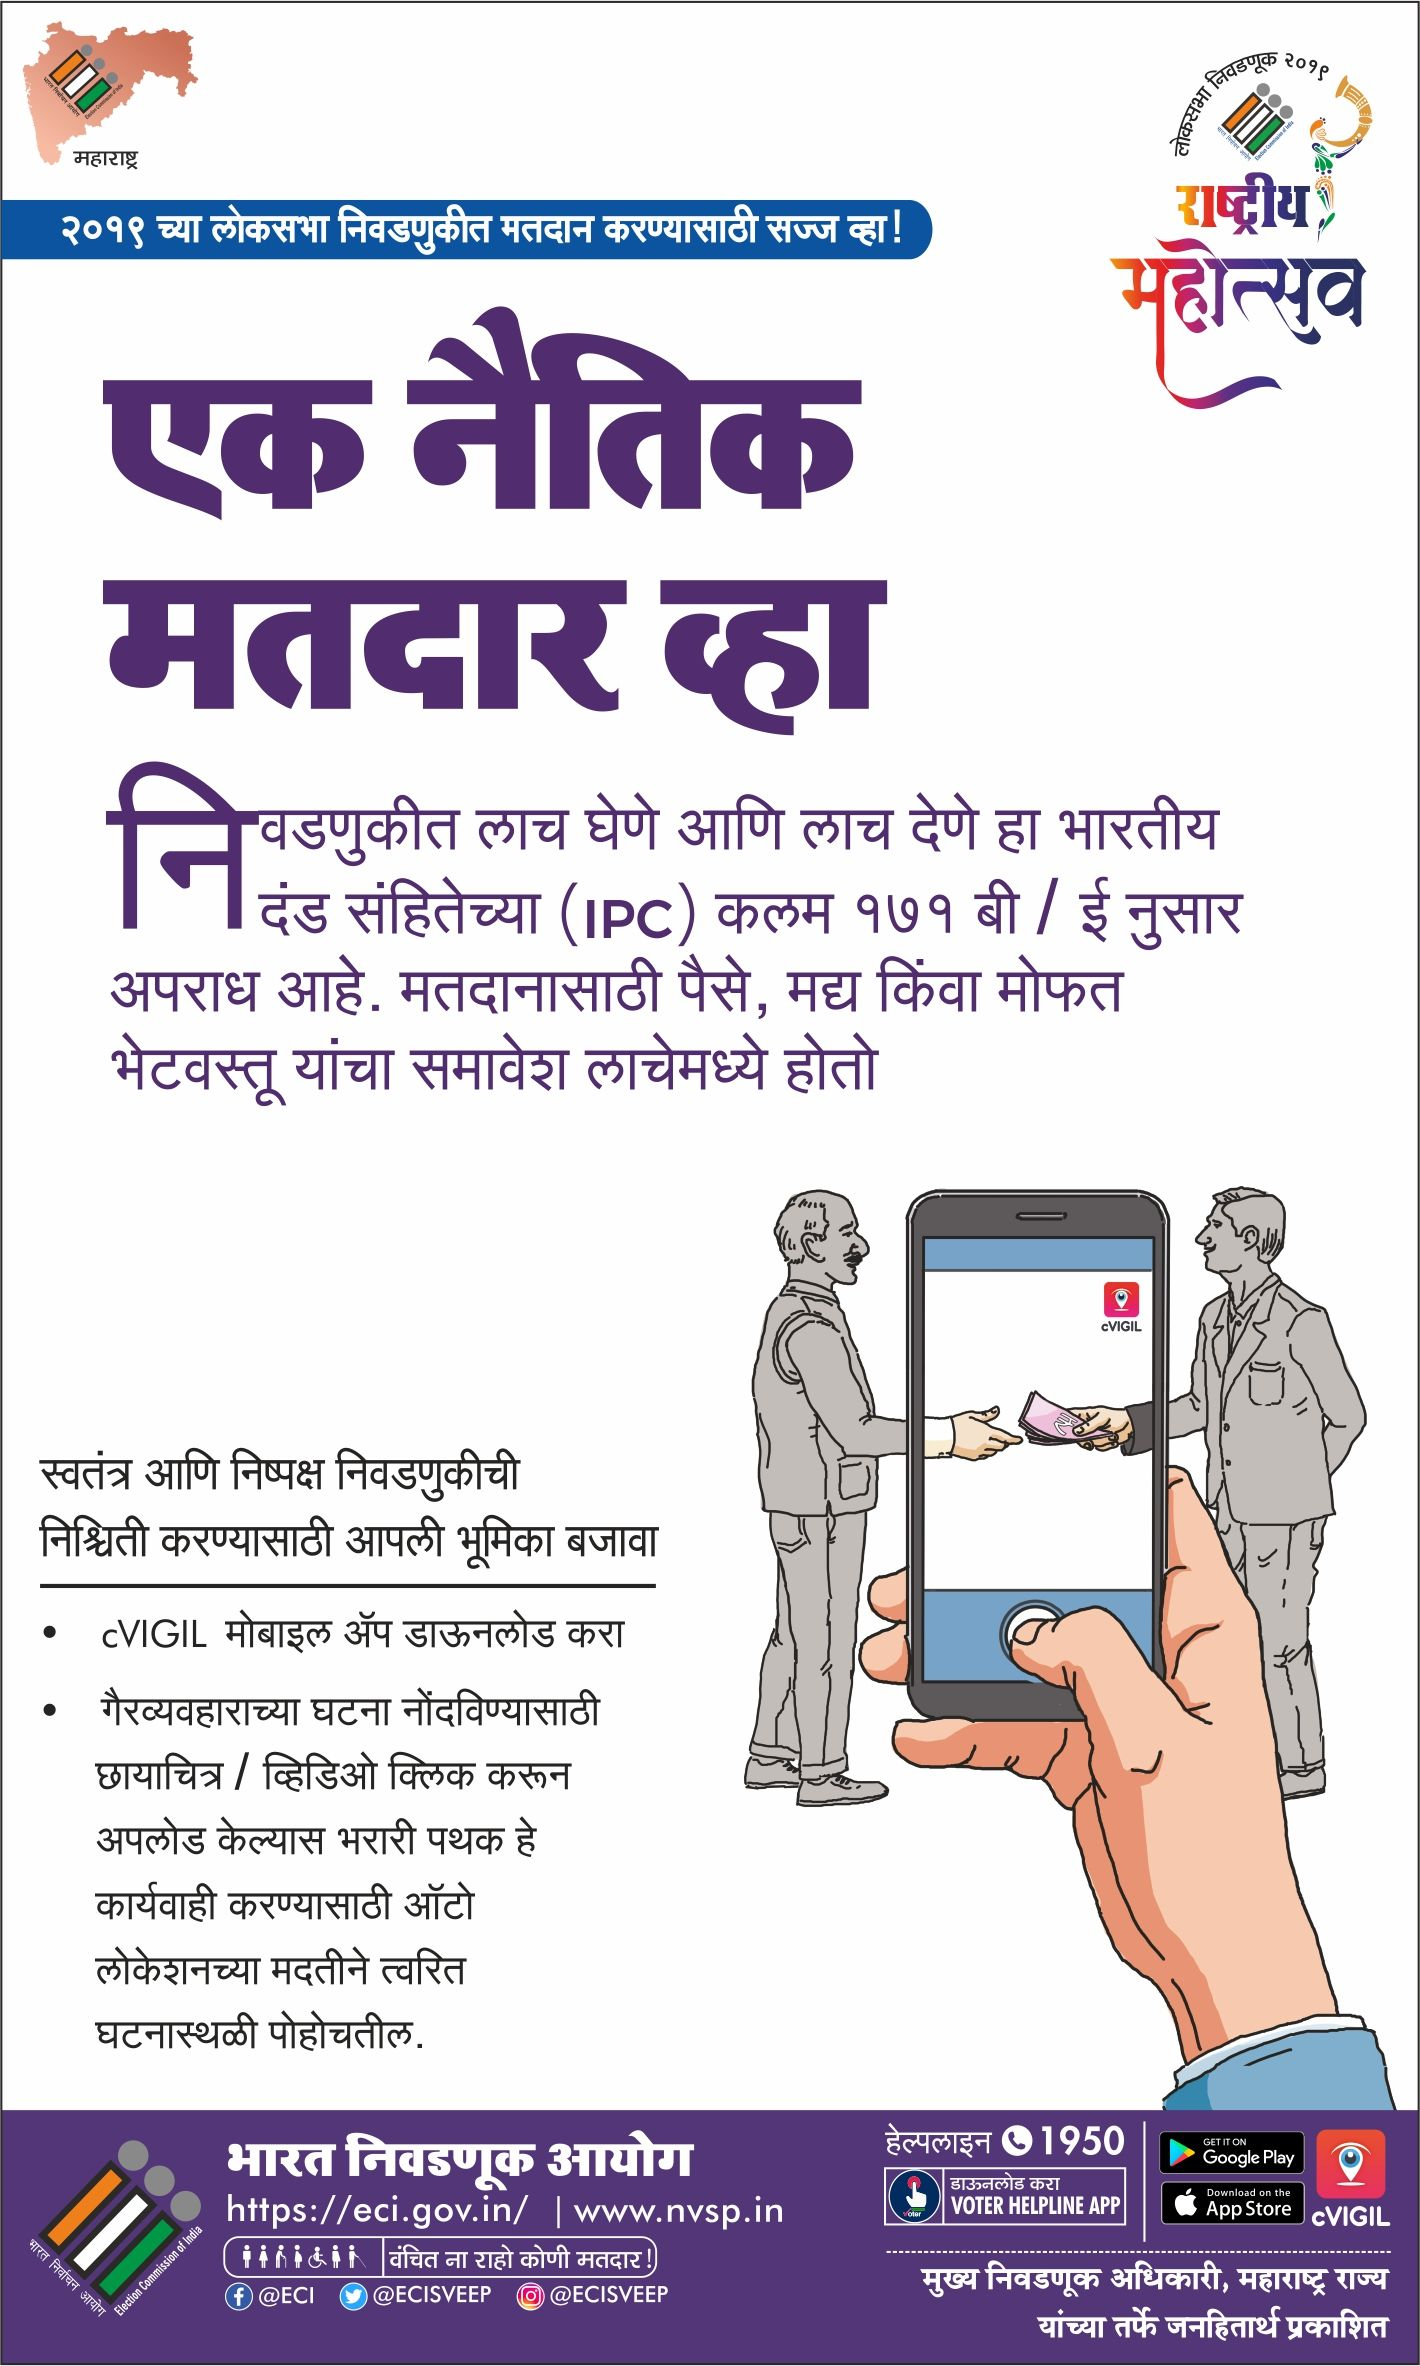 Bribery Ad 30 April - Marathi.jpg